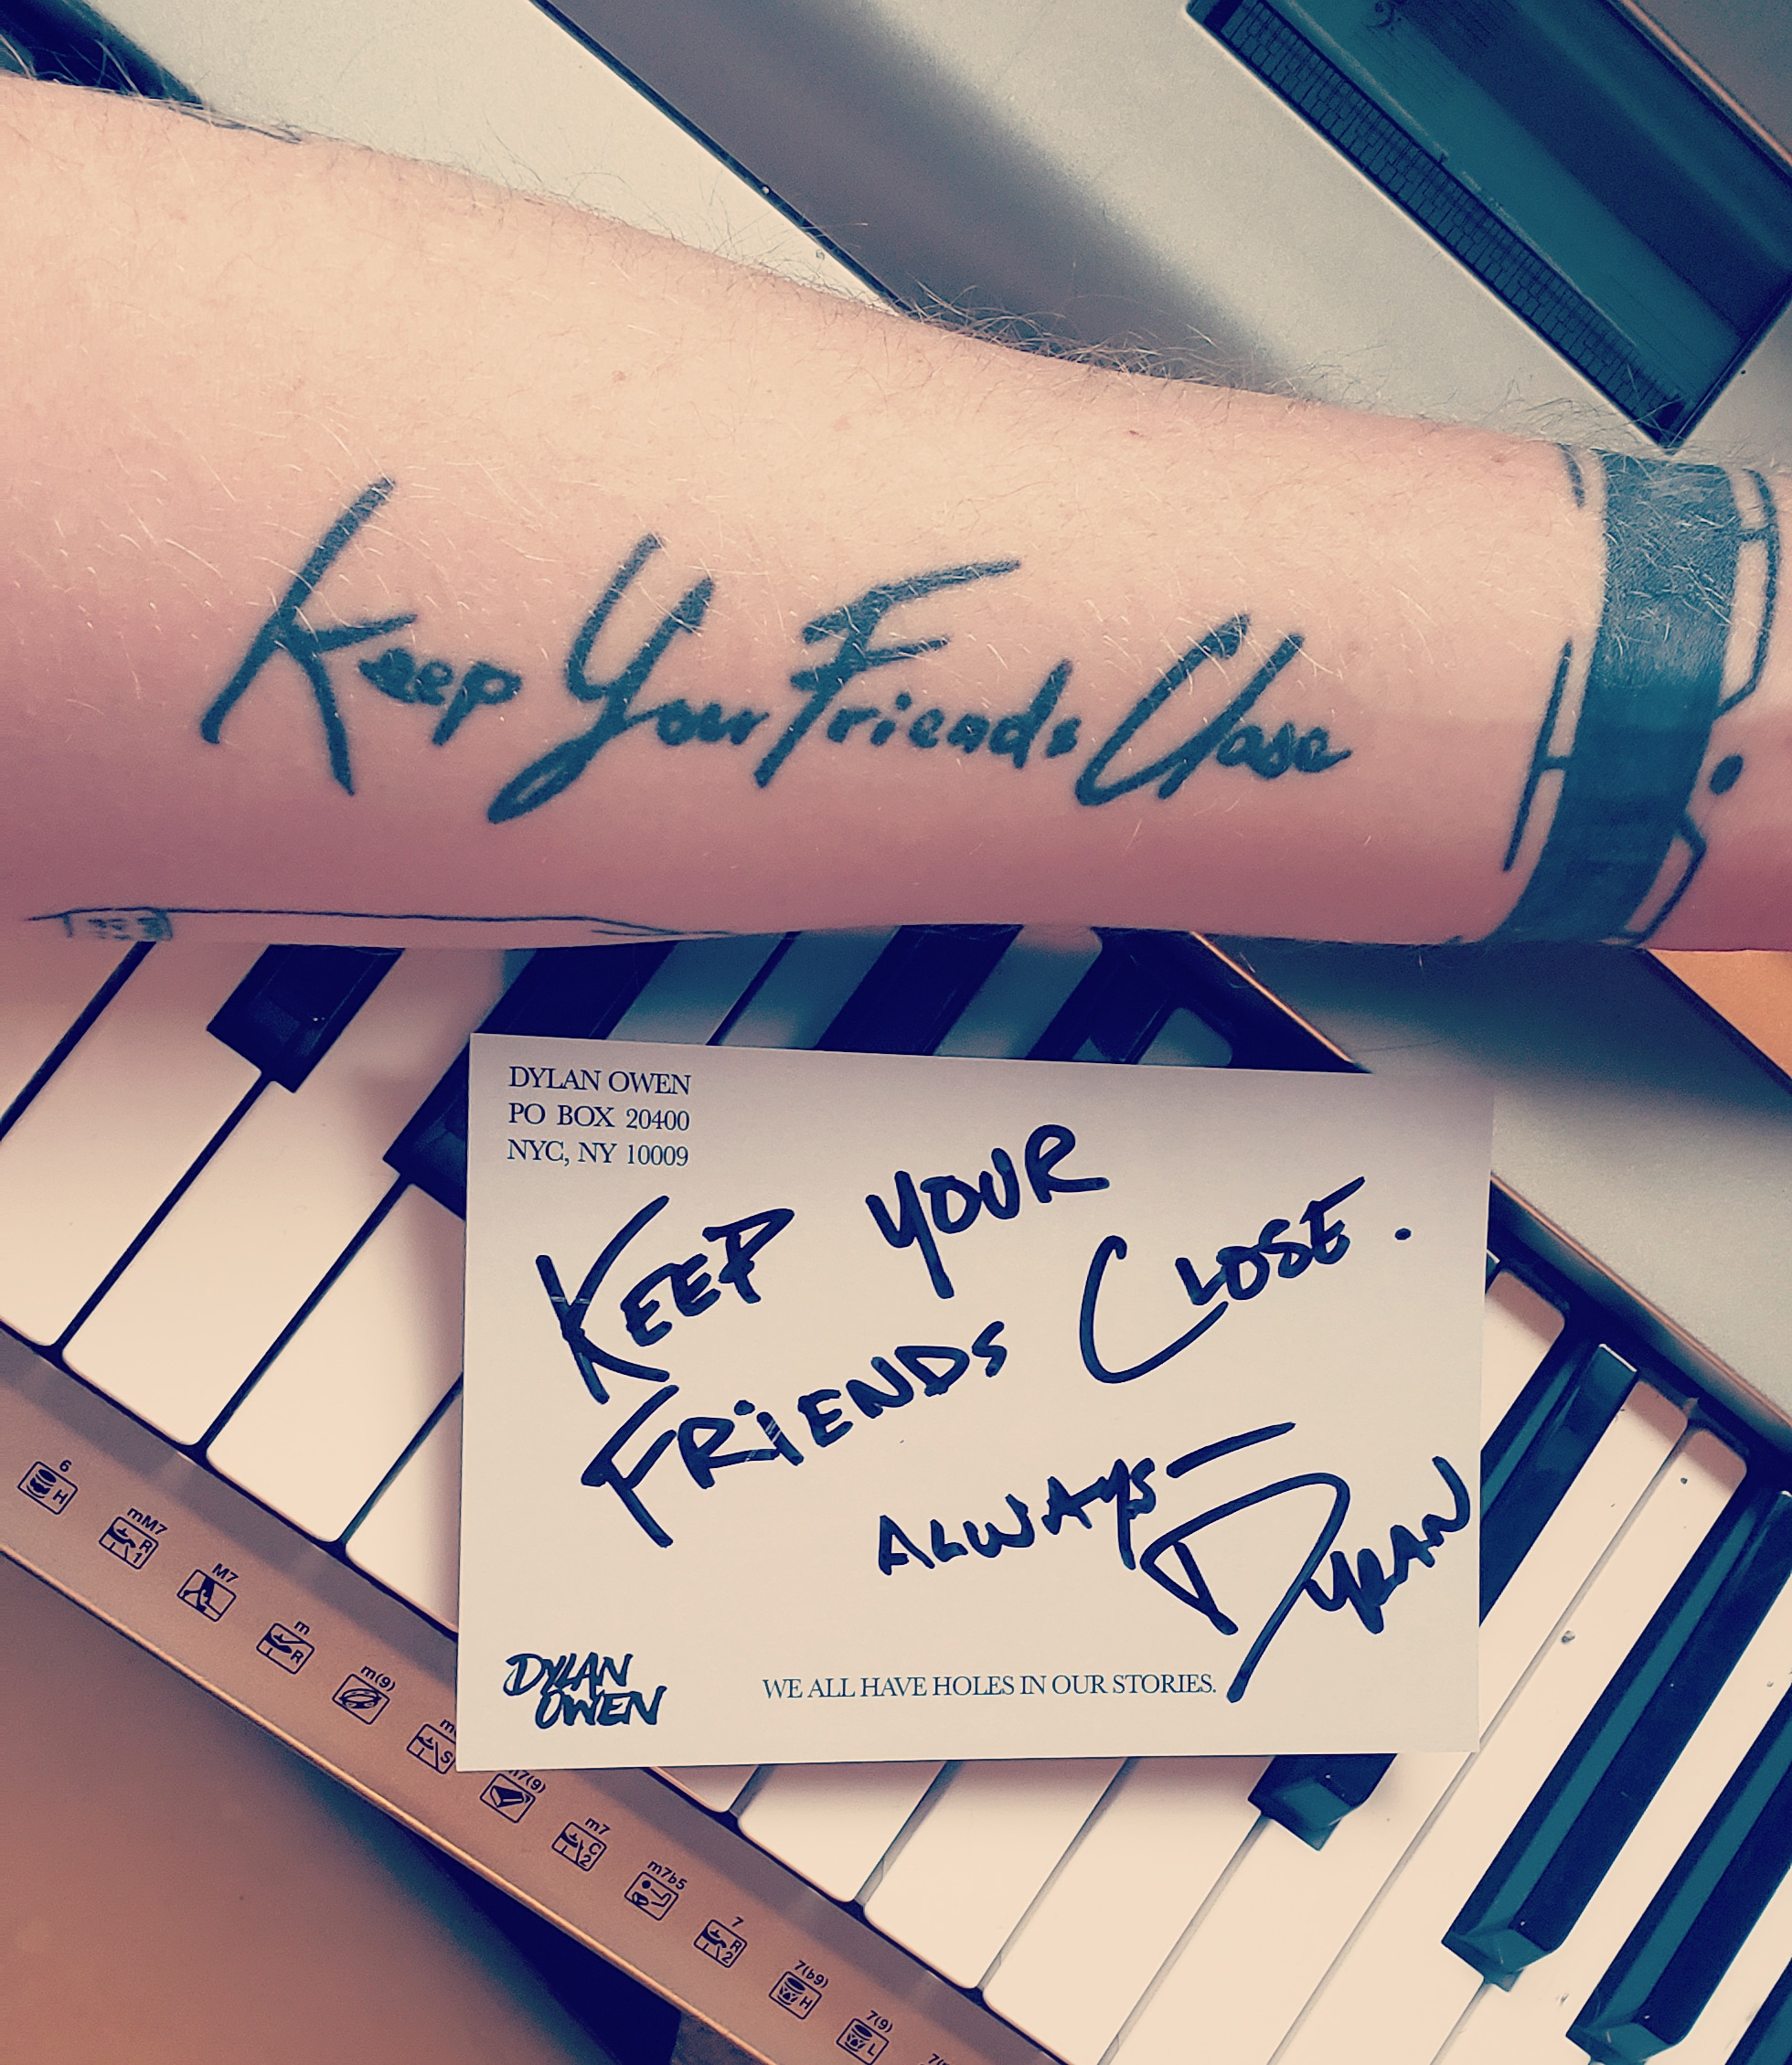 the first ever handwritten tattoo I did. for my man Joey Drees.